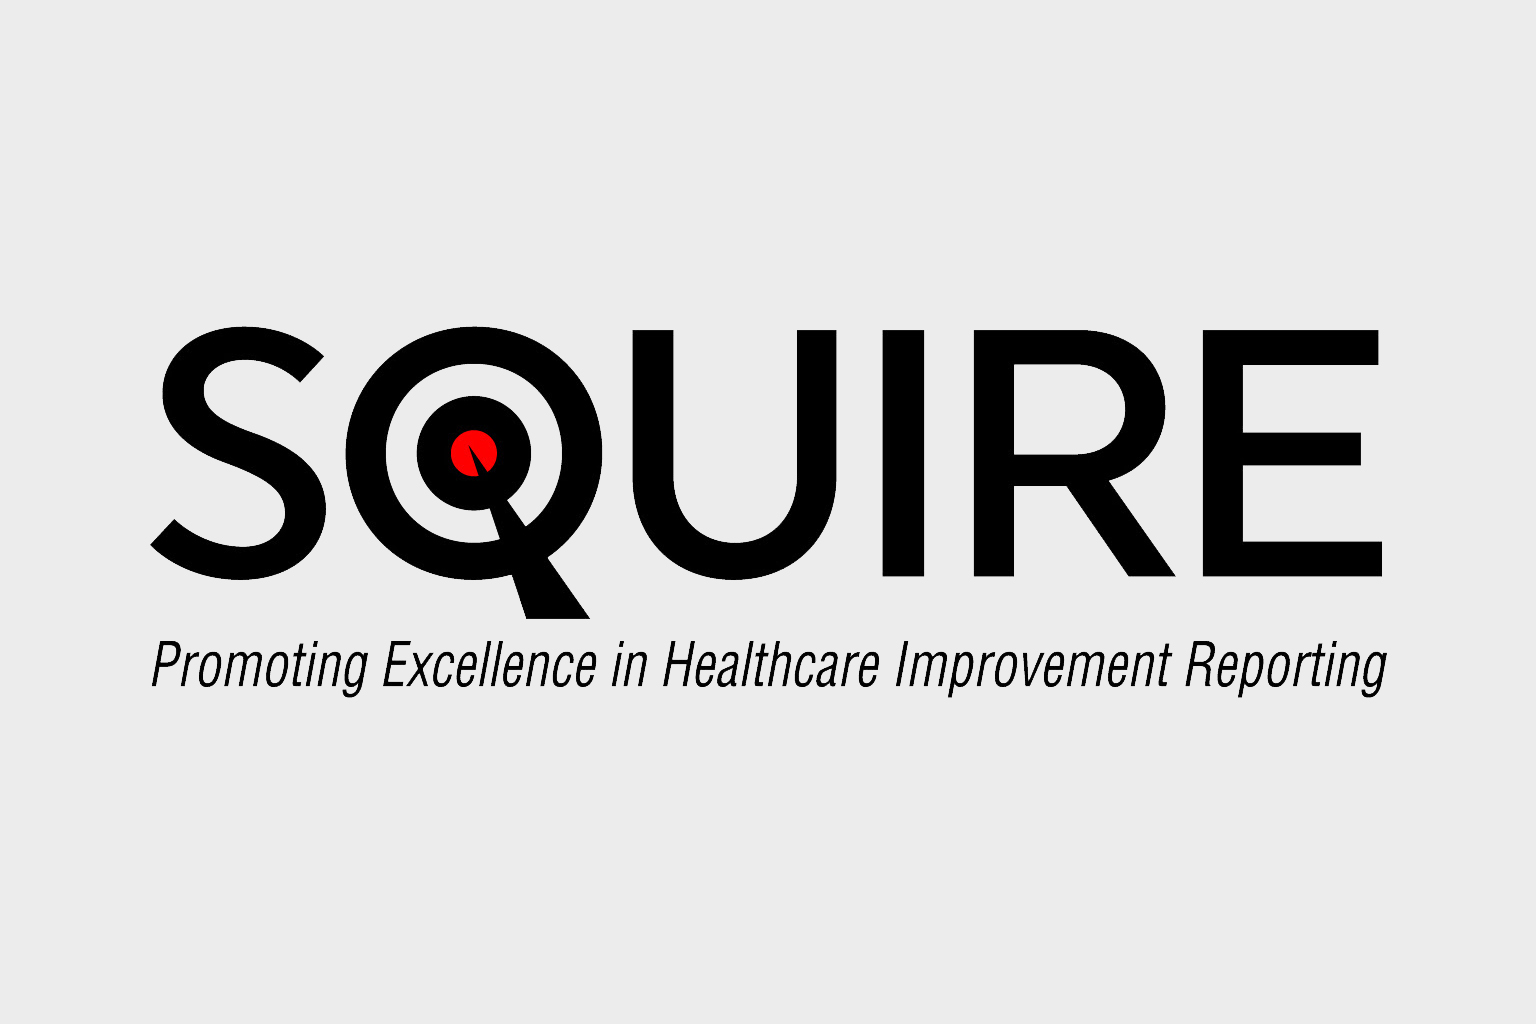 Squire, promoting excellence in healthcare improvement reporting logo